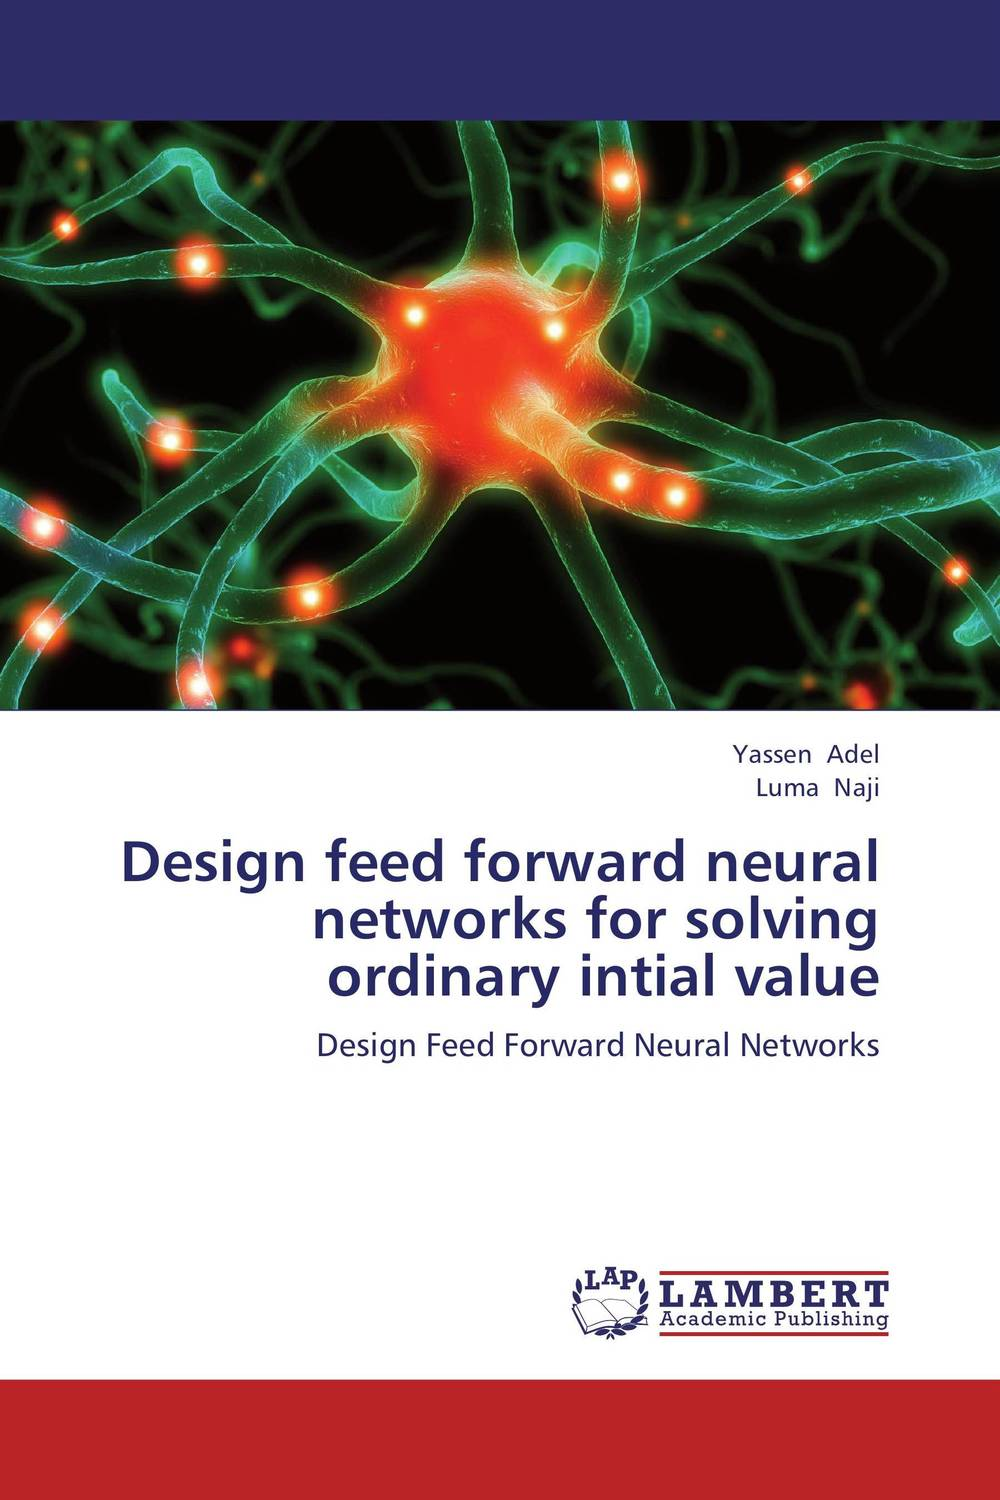 Design feed forward neural networks for solving ordinary intial value